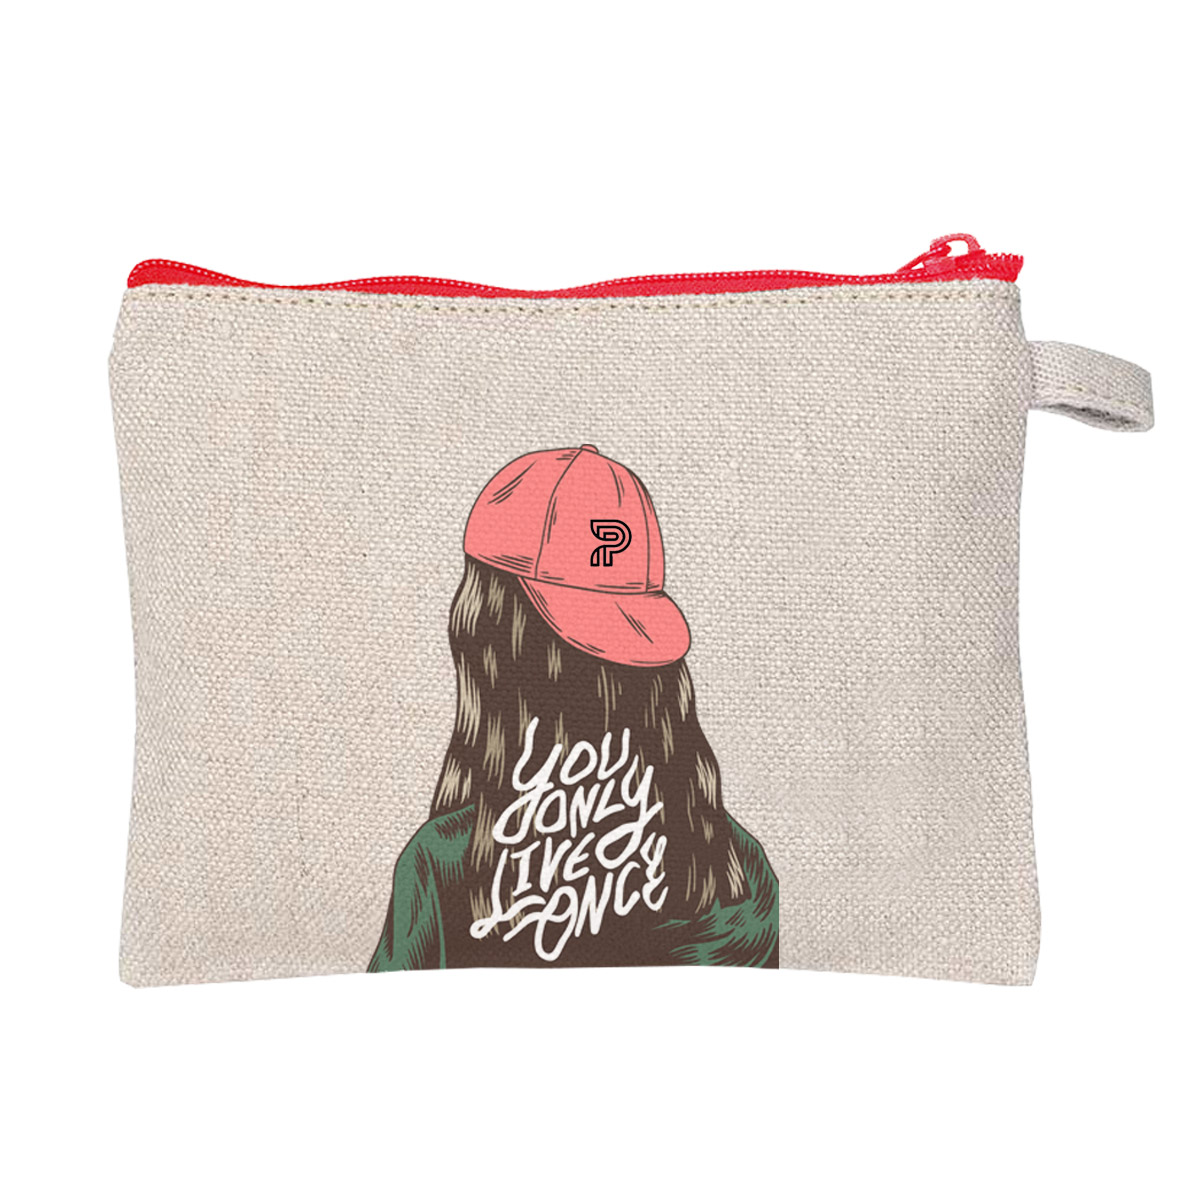 graphic printed hemp cosmetic bag